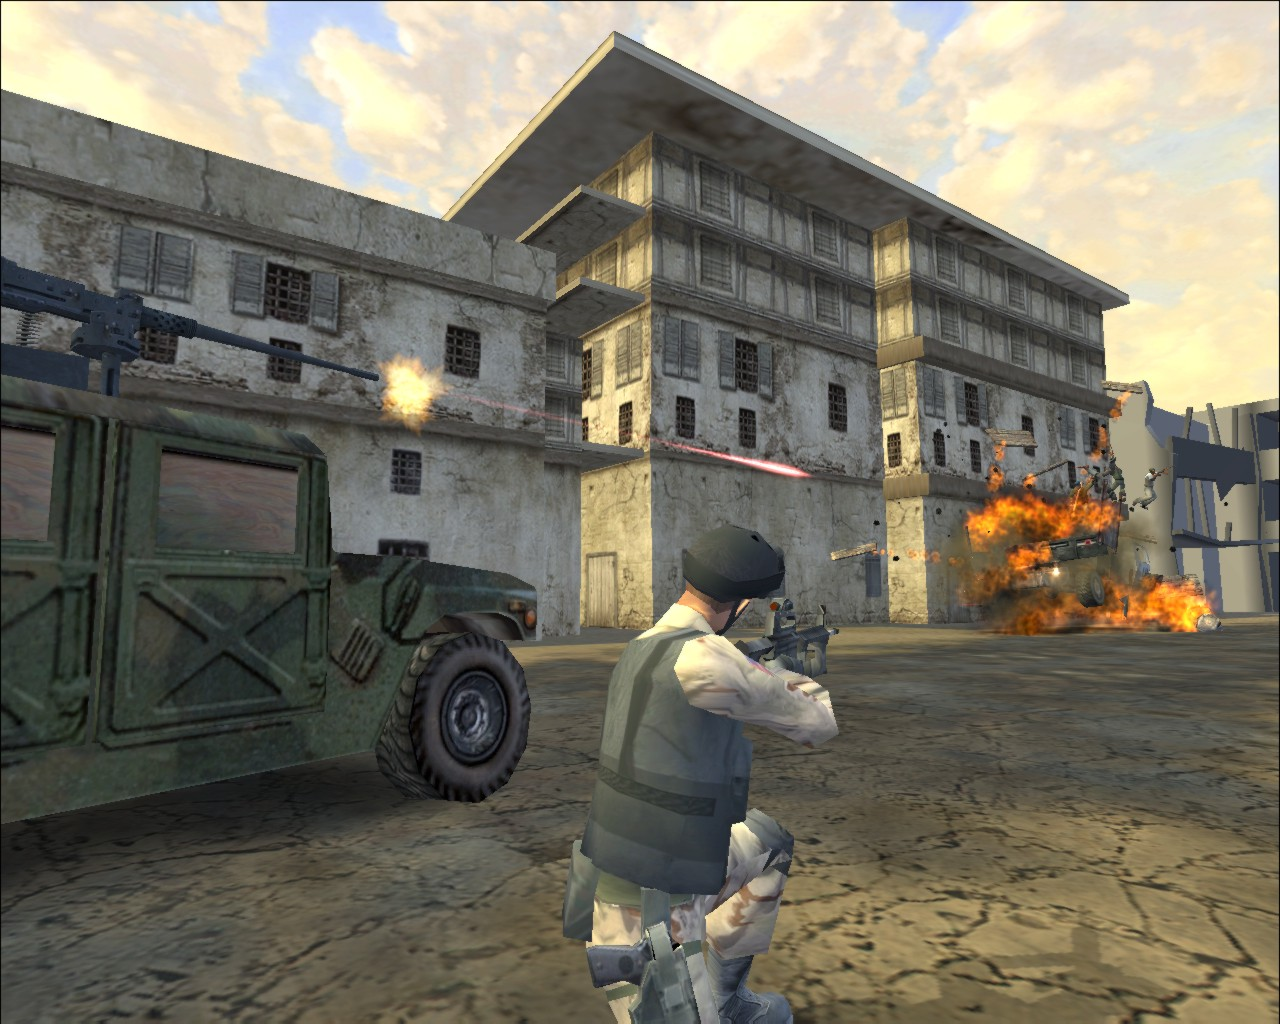 Delta Force (video game)